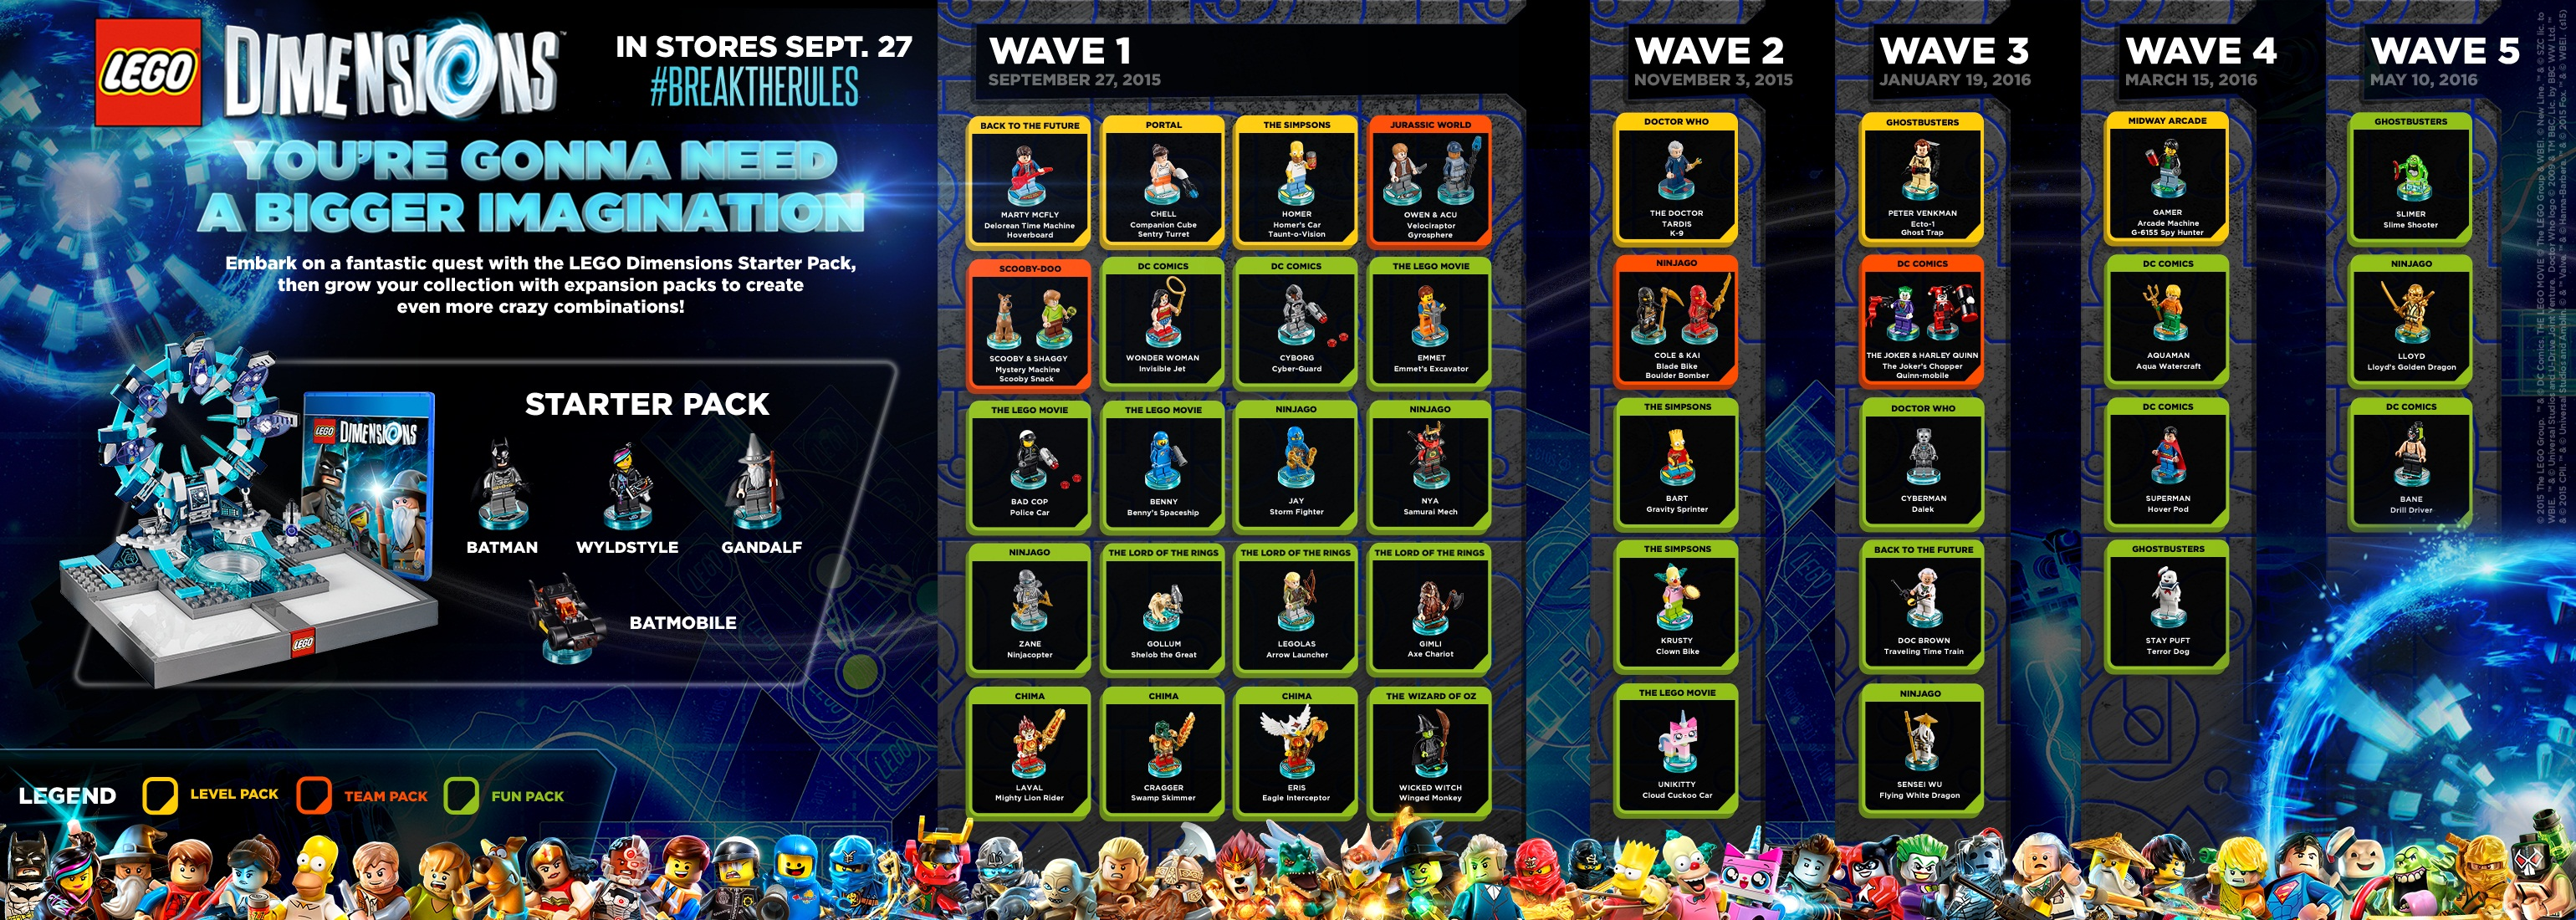 LEGO Dimensions Waves